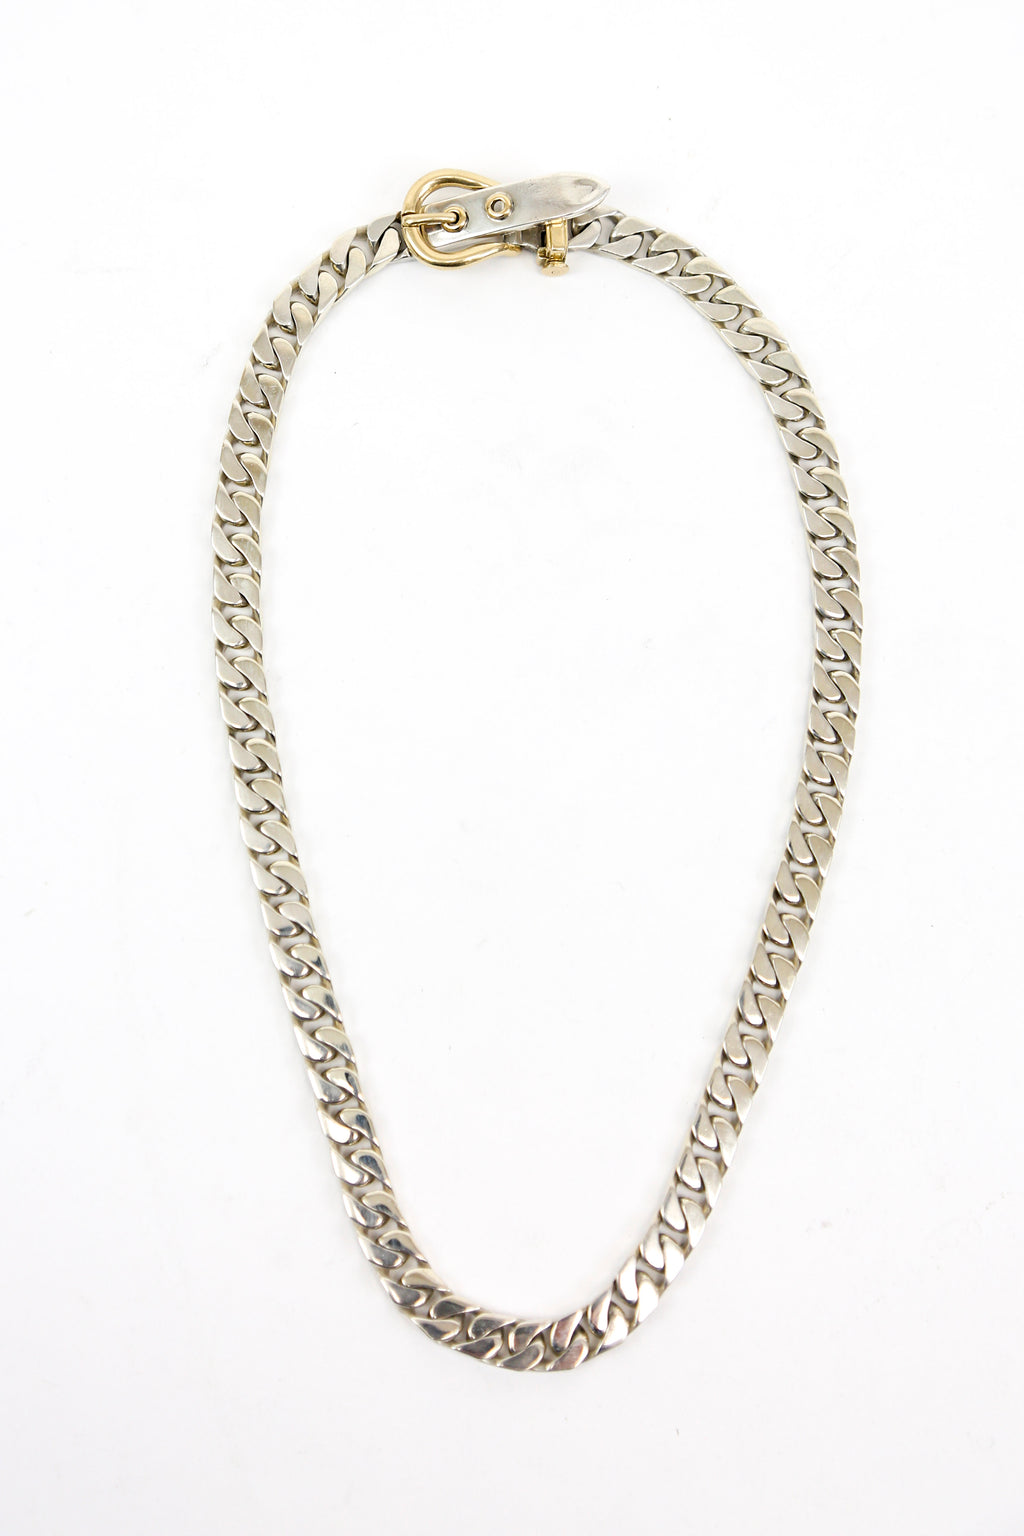 Hermès Sterling Silver and 18k Gold Boucle Sellier Necklace 16""